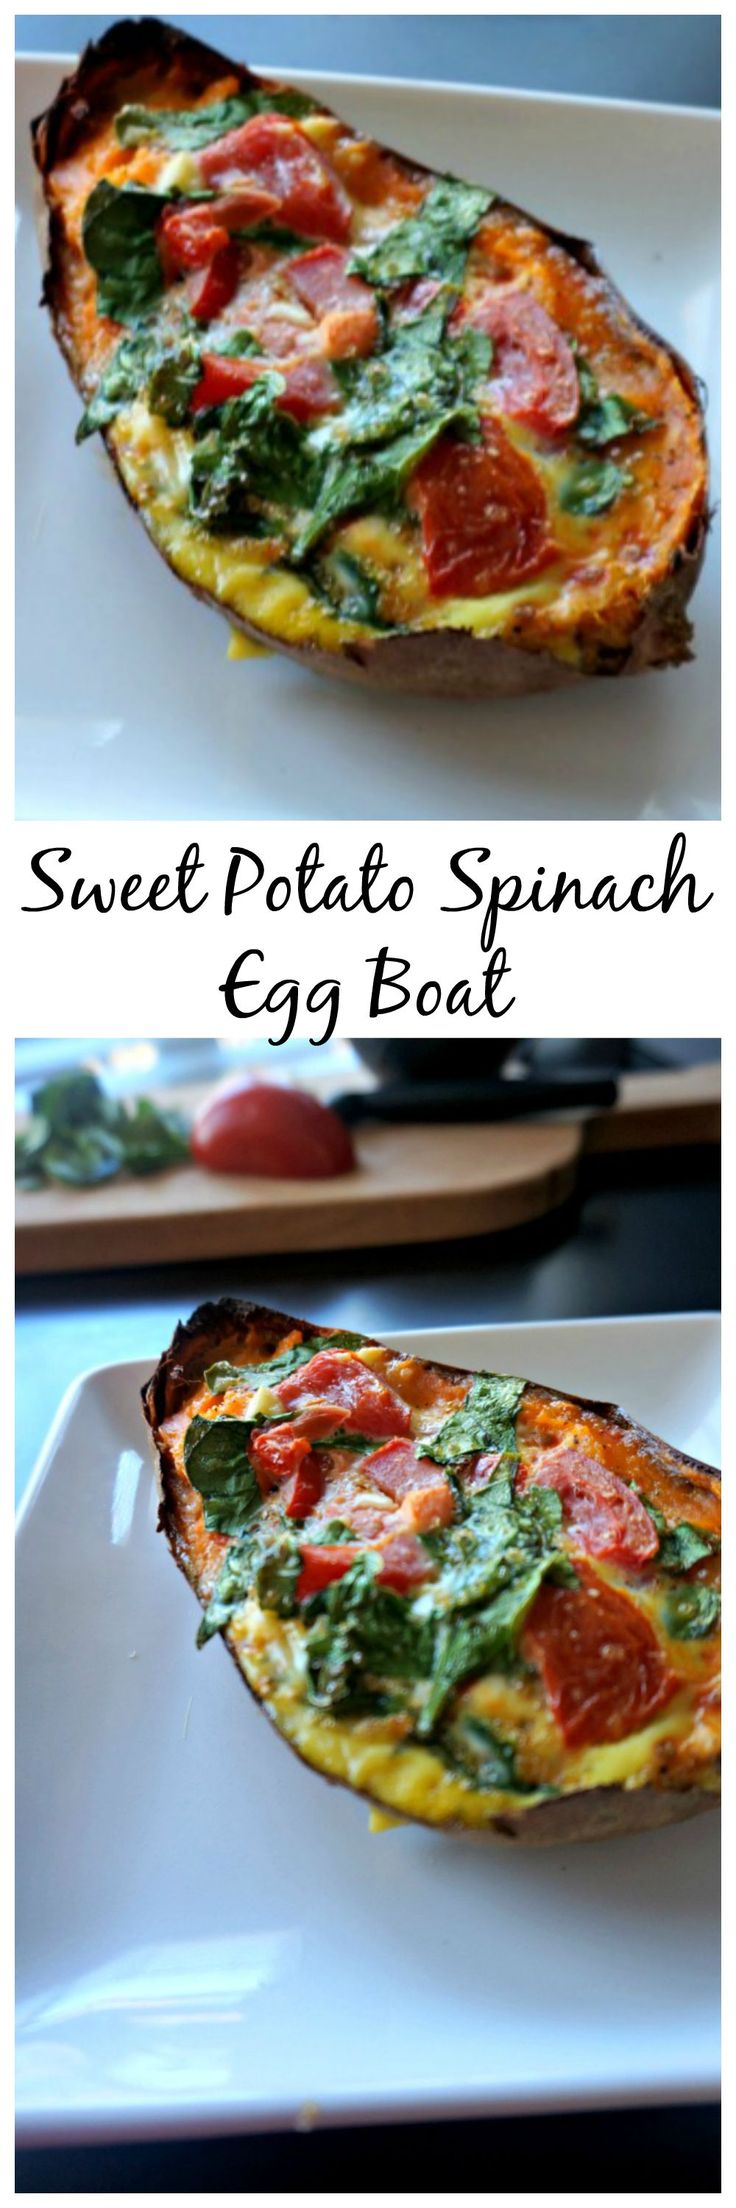 Sweet Potato Spinach Egg Bowl: A tenderly baked sweet potato, filled with a tomato, feta, and spinach baked egg.